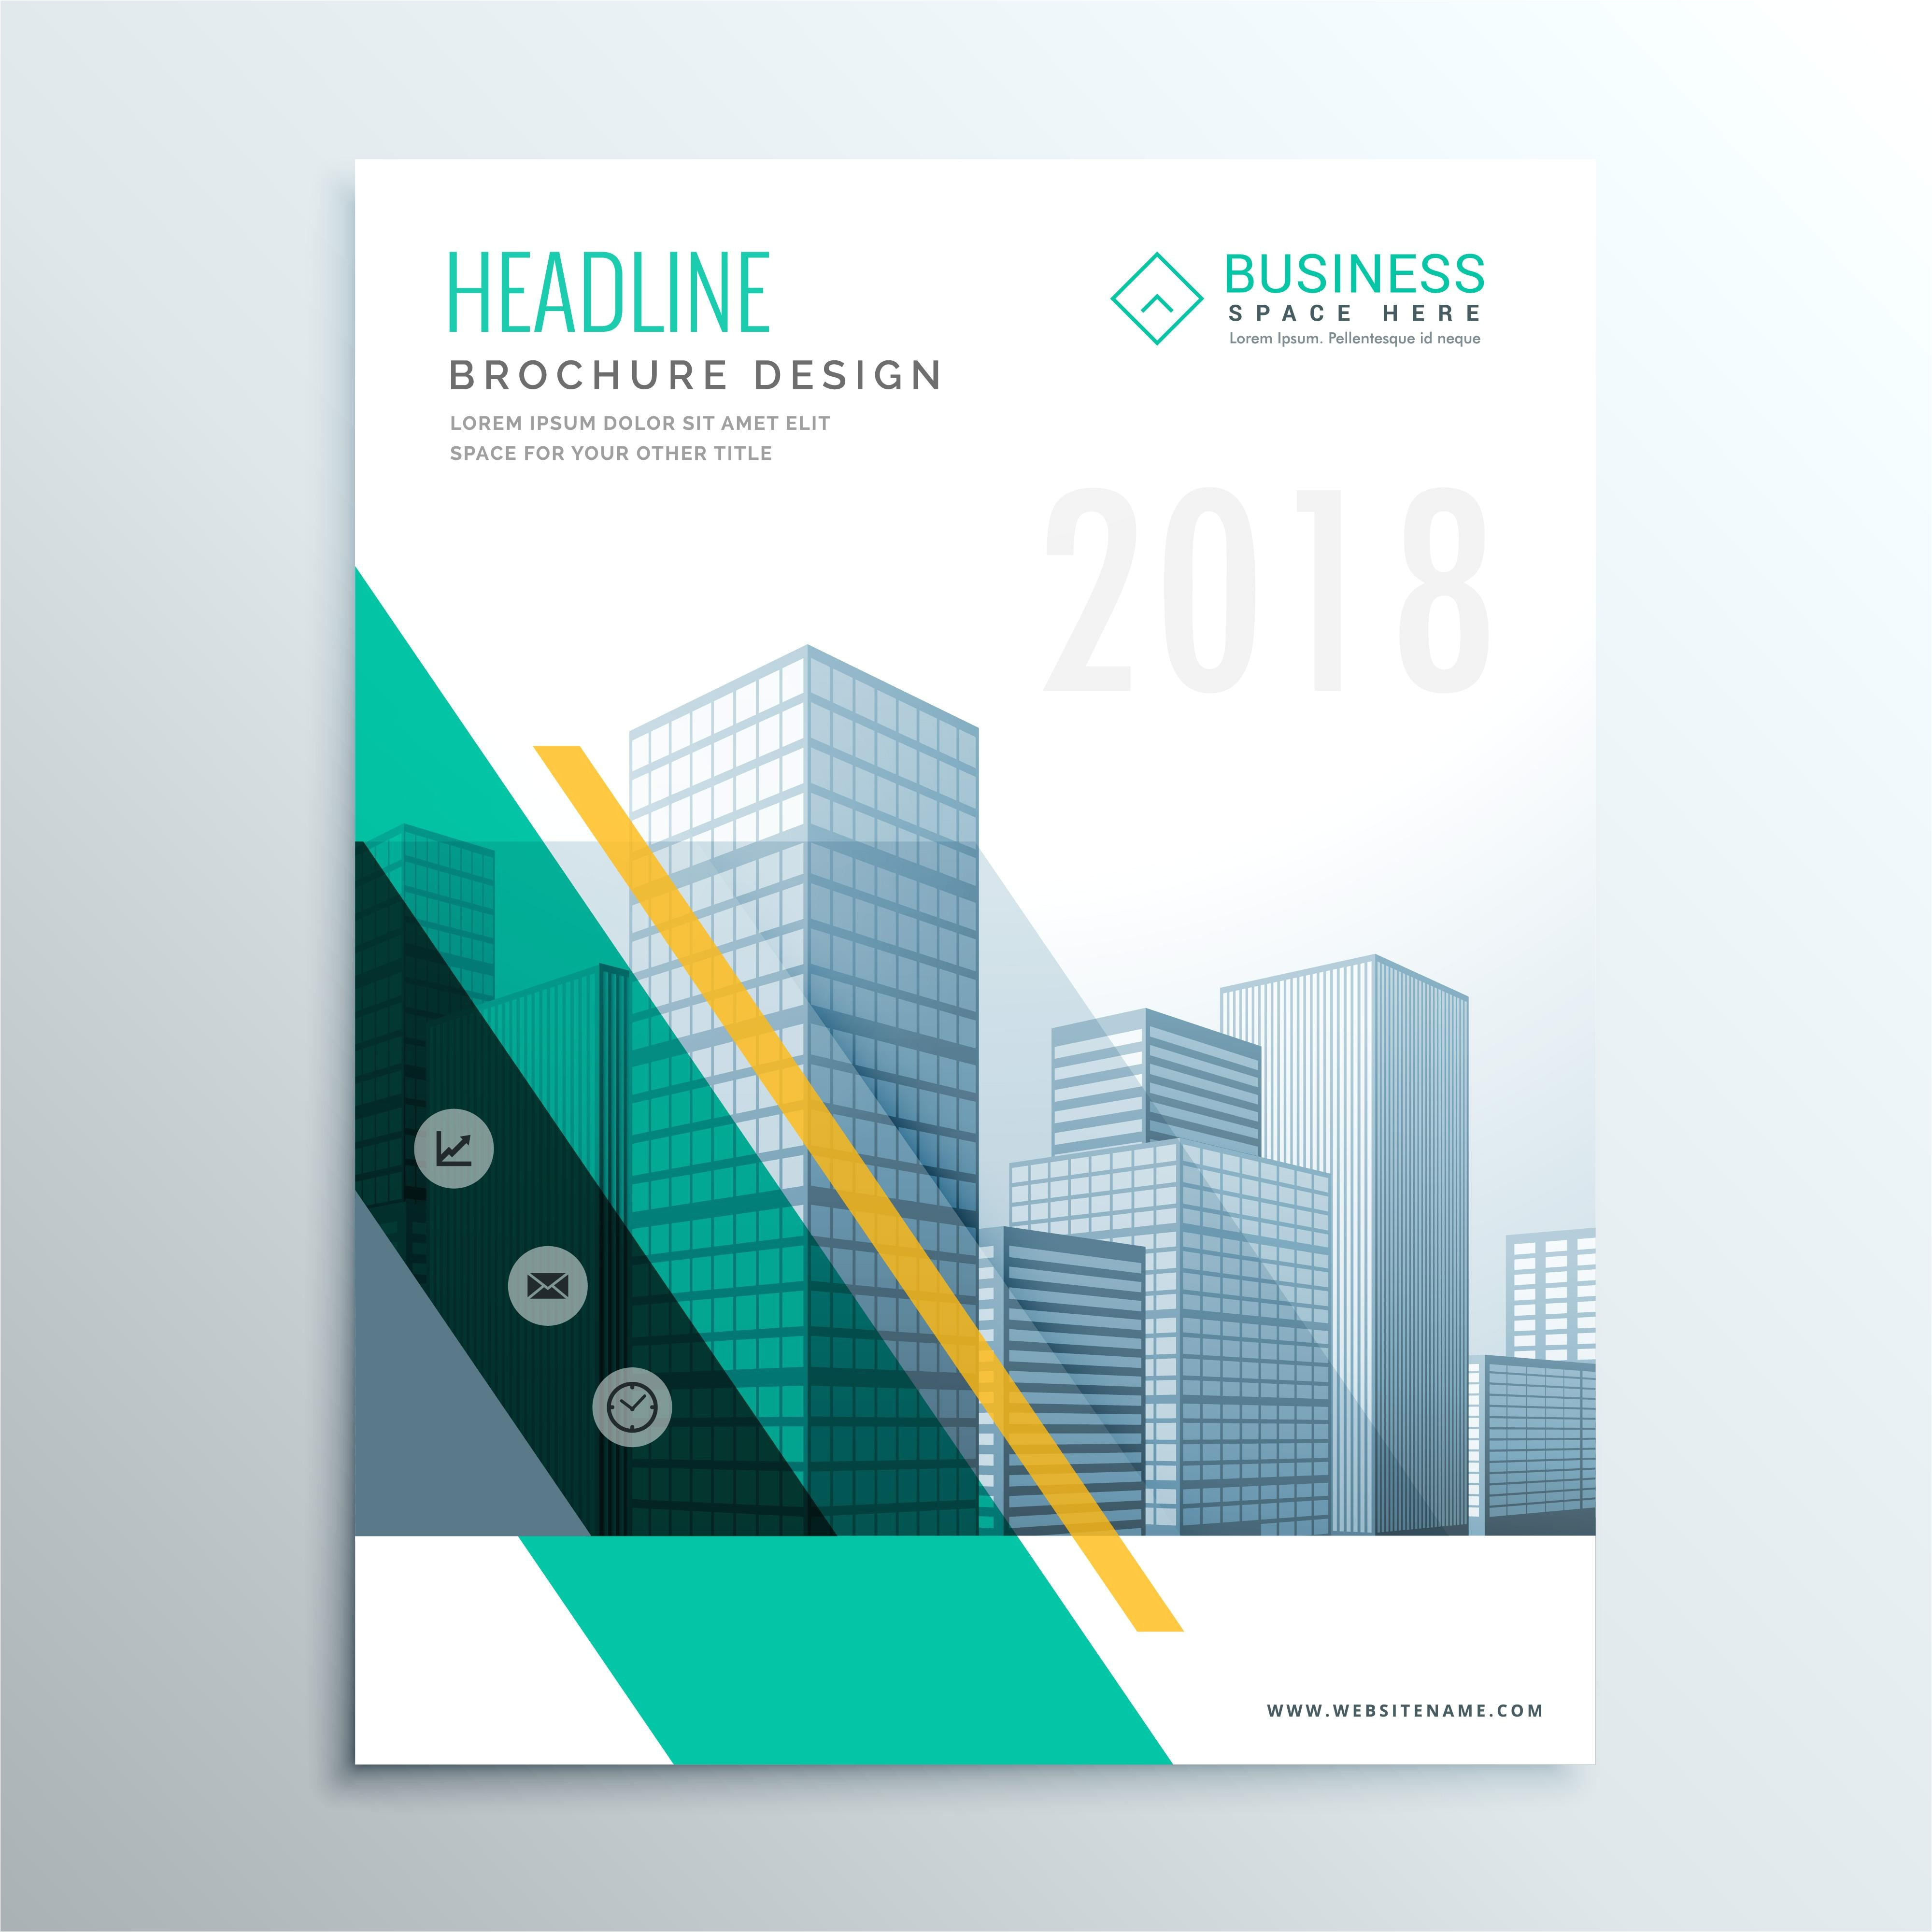 brochure design templates cdr format free download new template brochure design template elegant business cover page